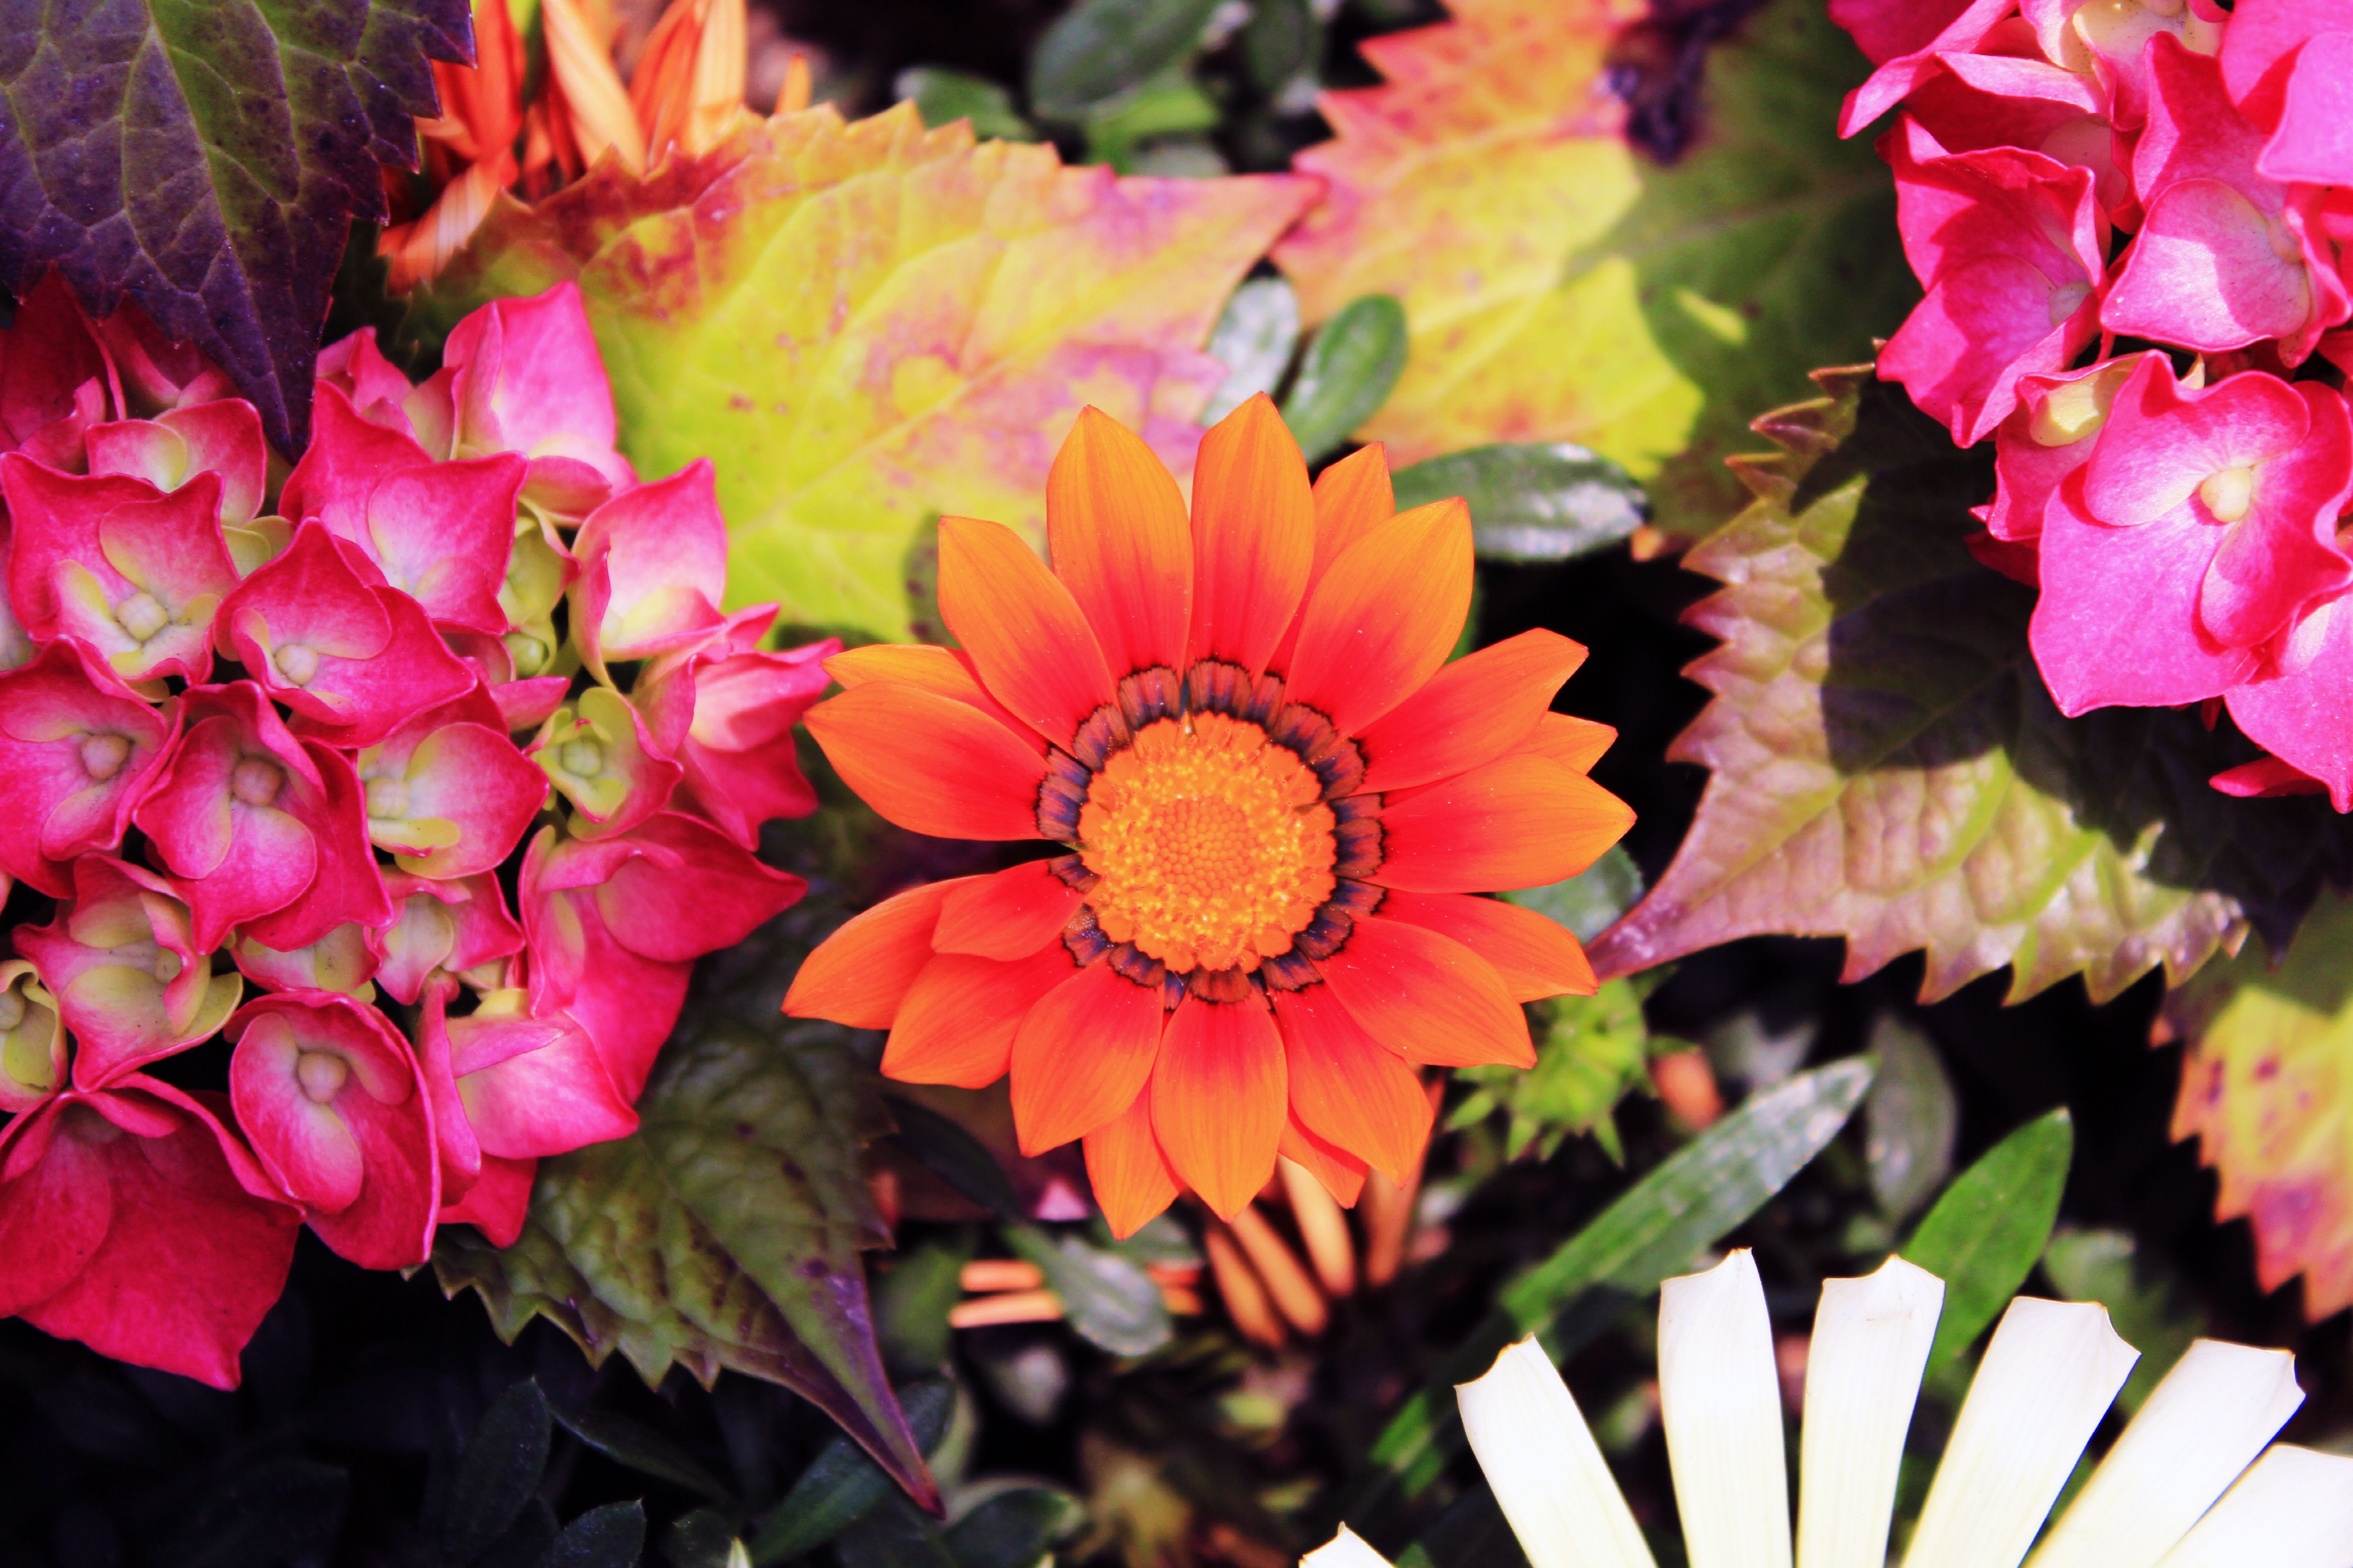 flowers with various colors | Flowers Four Season | Pinterest | Flowers